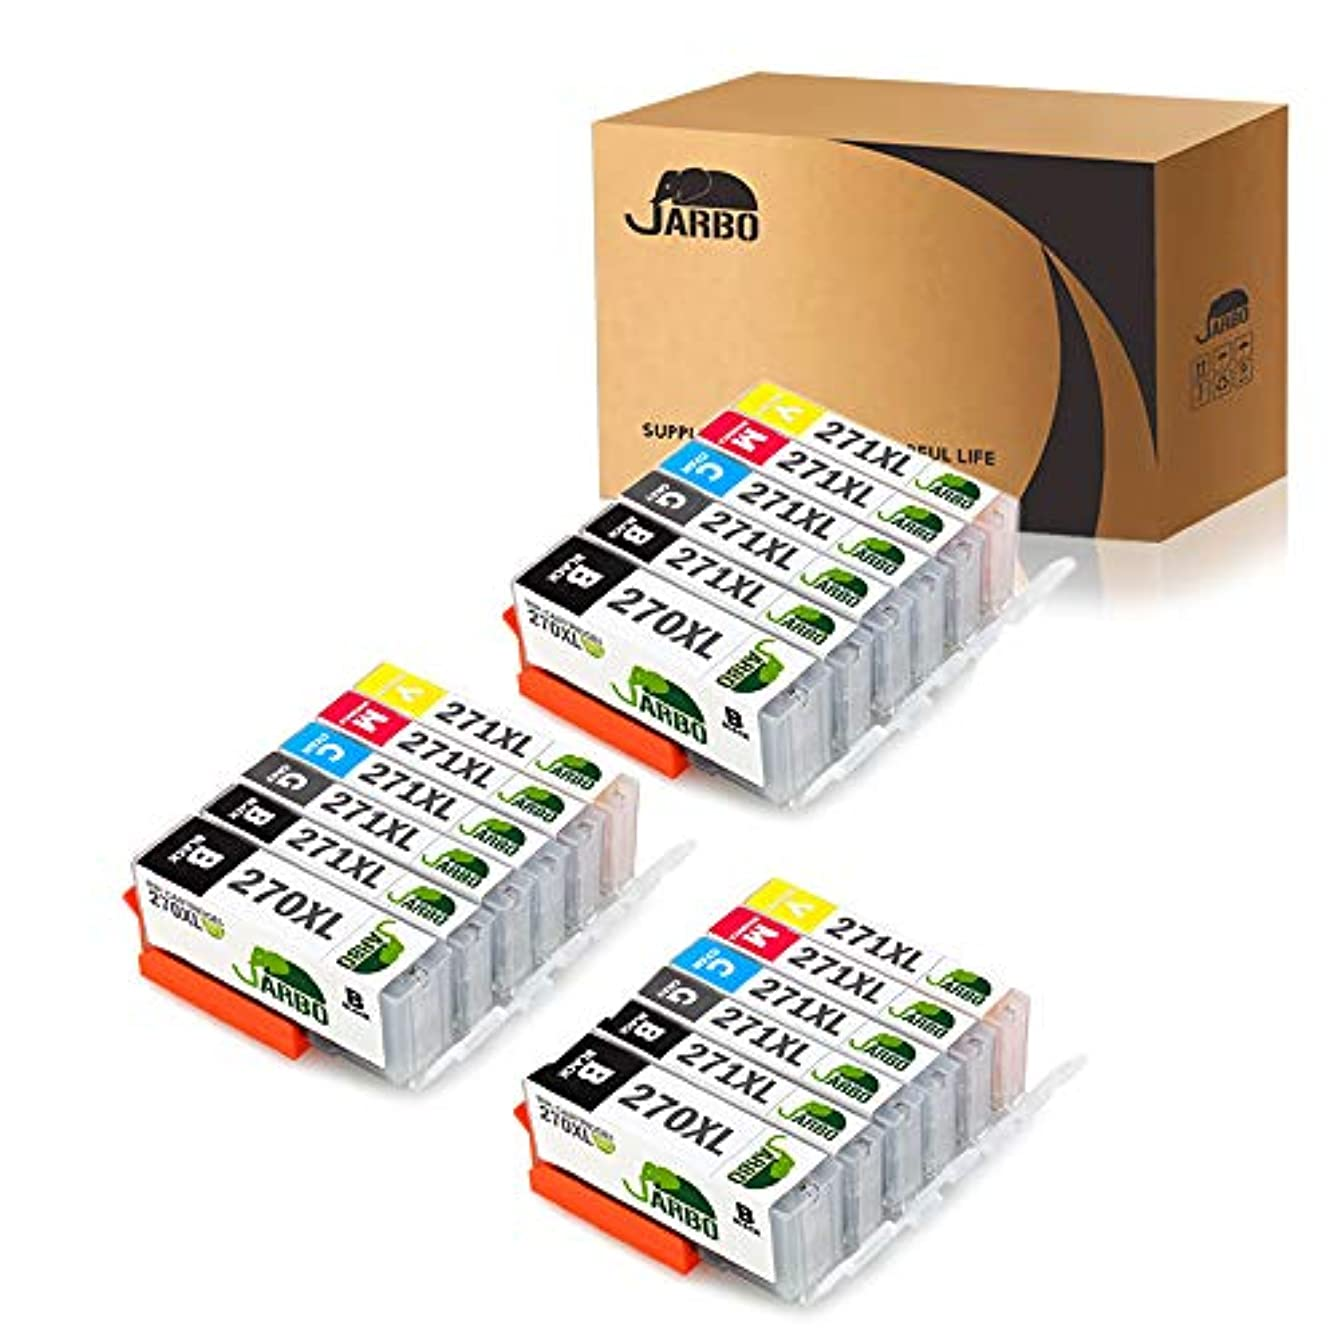 Compatible for Canon MG7720 TS9020 TS8020 Printer, JARBO Compatible Ink cartridges Replacement for Canon PGI-270XL CLI-271XL, 6 Color, 3 Sets(3 PGBK, 3 Black, 3 Grey, 3 Cyan, 3 Magenta, 3 Yellow)